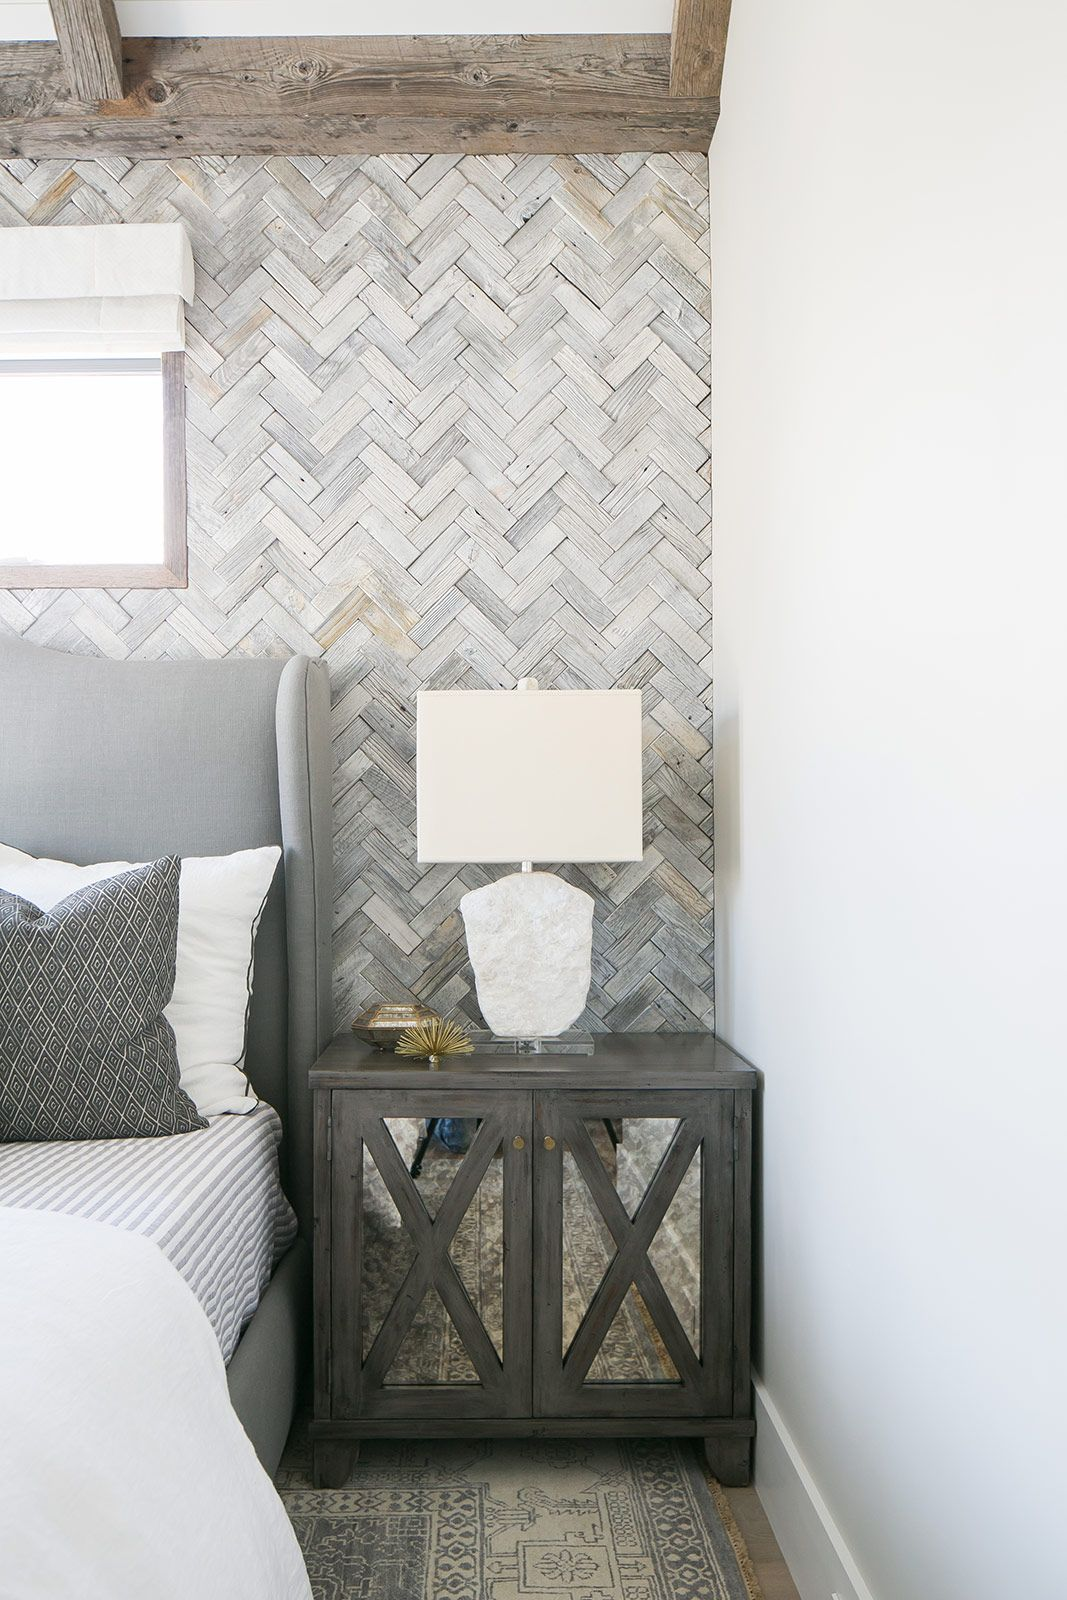 Marigold image 21 brooke wagner design herringbone tile wall rustic wood mirrored nightstand grey linen headboard fabulous